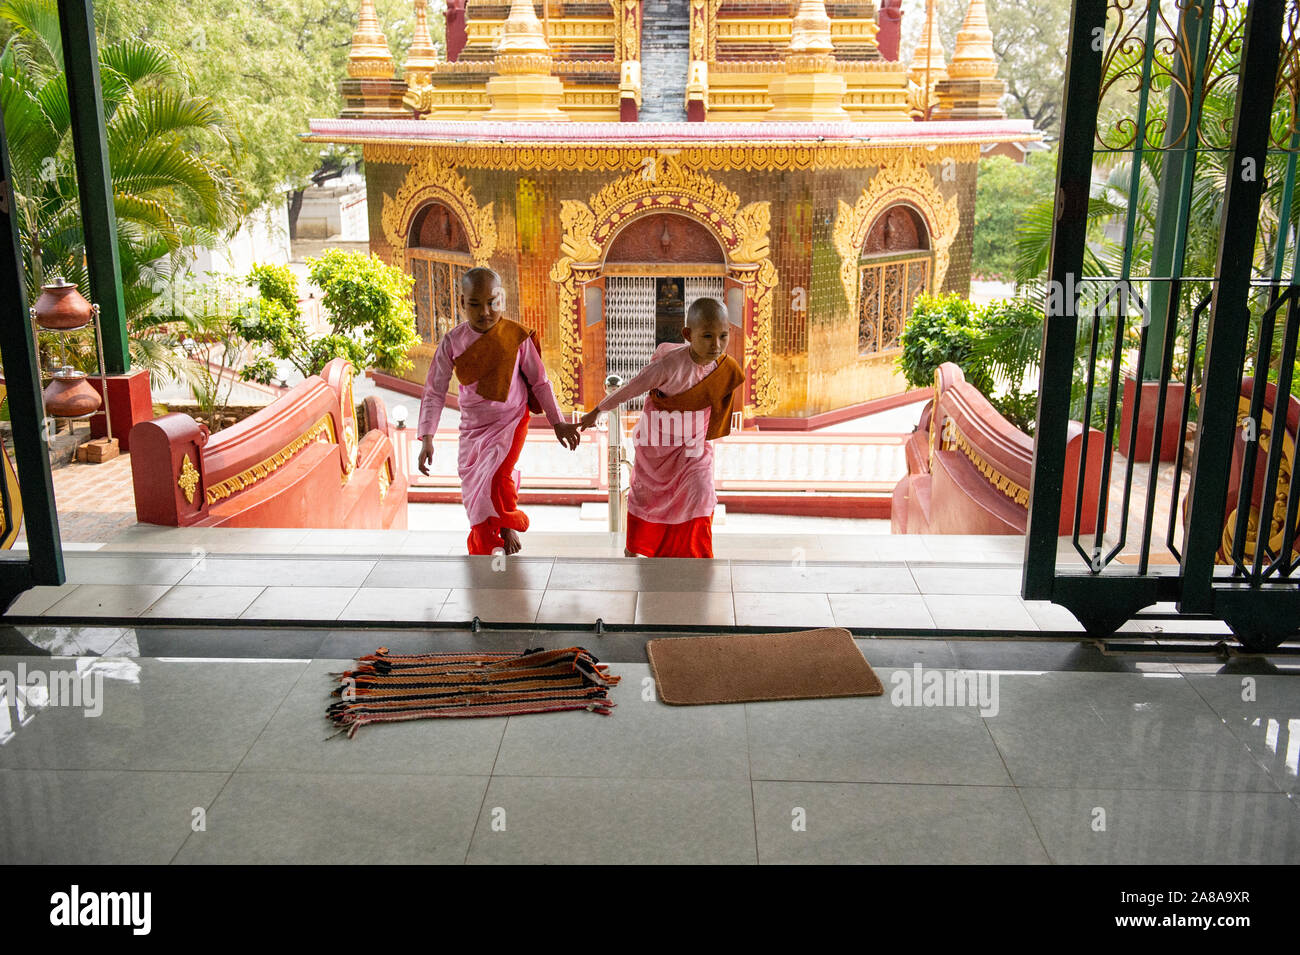 novice-nuns-at-the-entrance-to-the-buddha-shrine-at-the-sakyadhitathilashin-nunnery-school-in-sagaing-myanmar-2A8A9XR.jpg